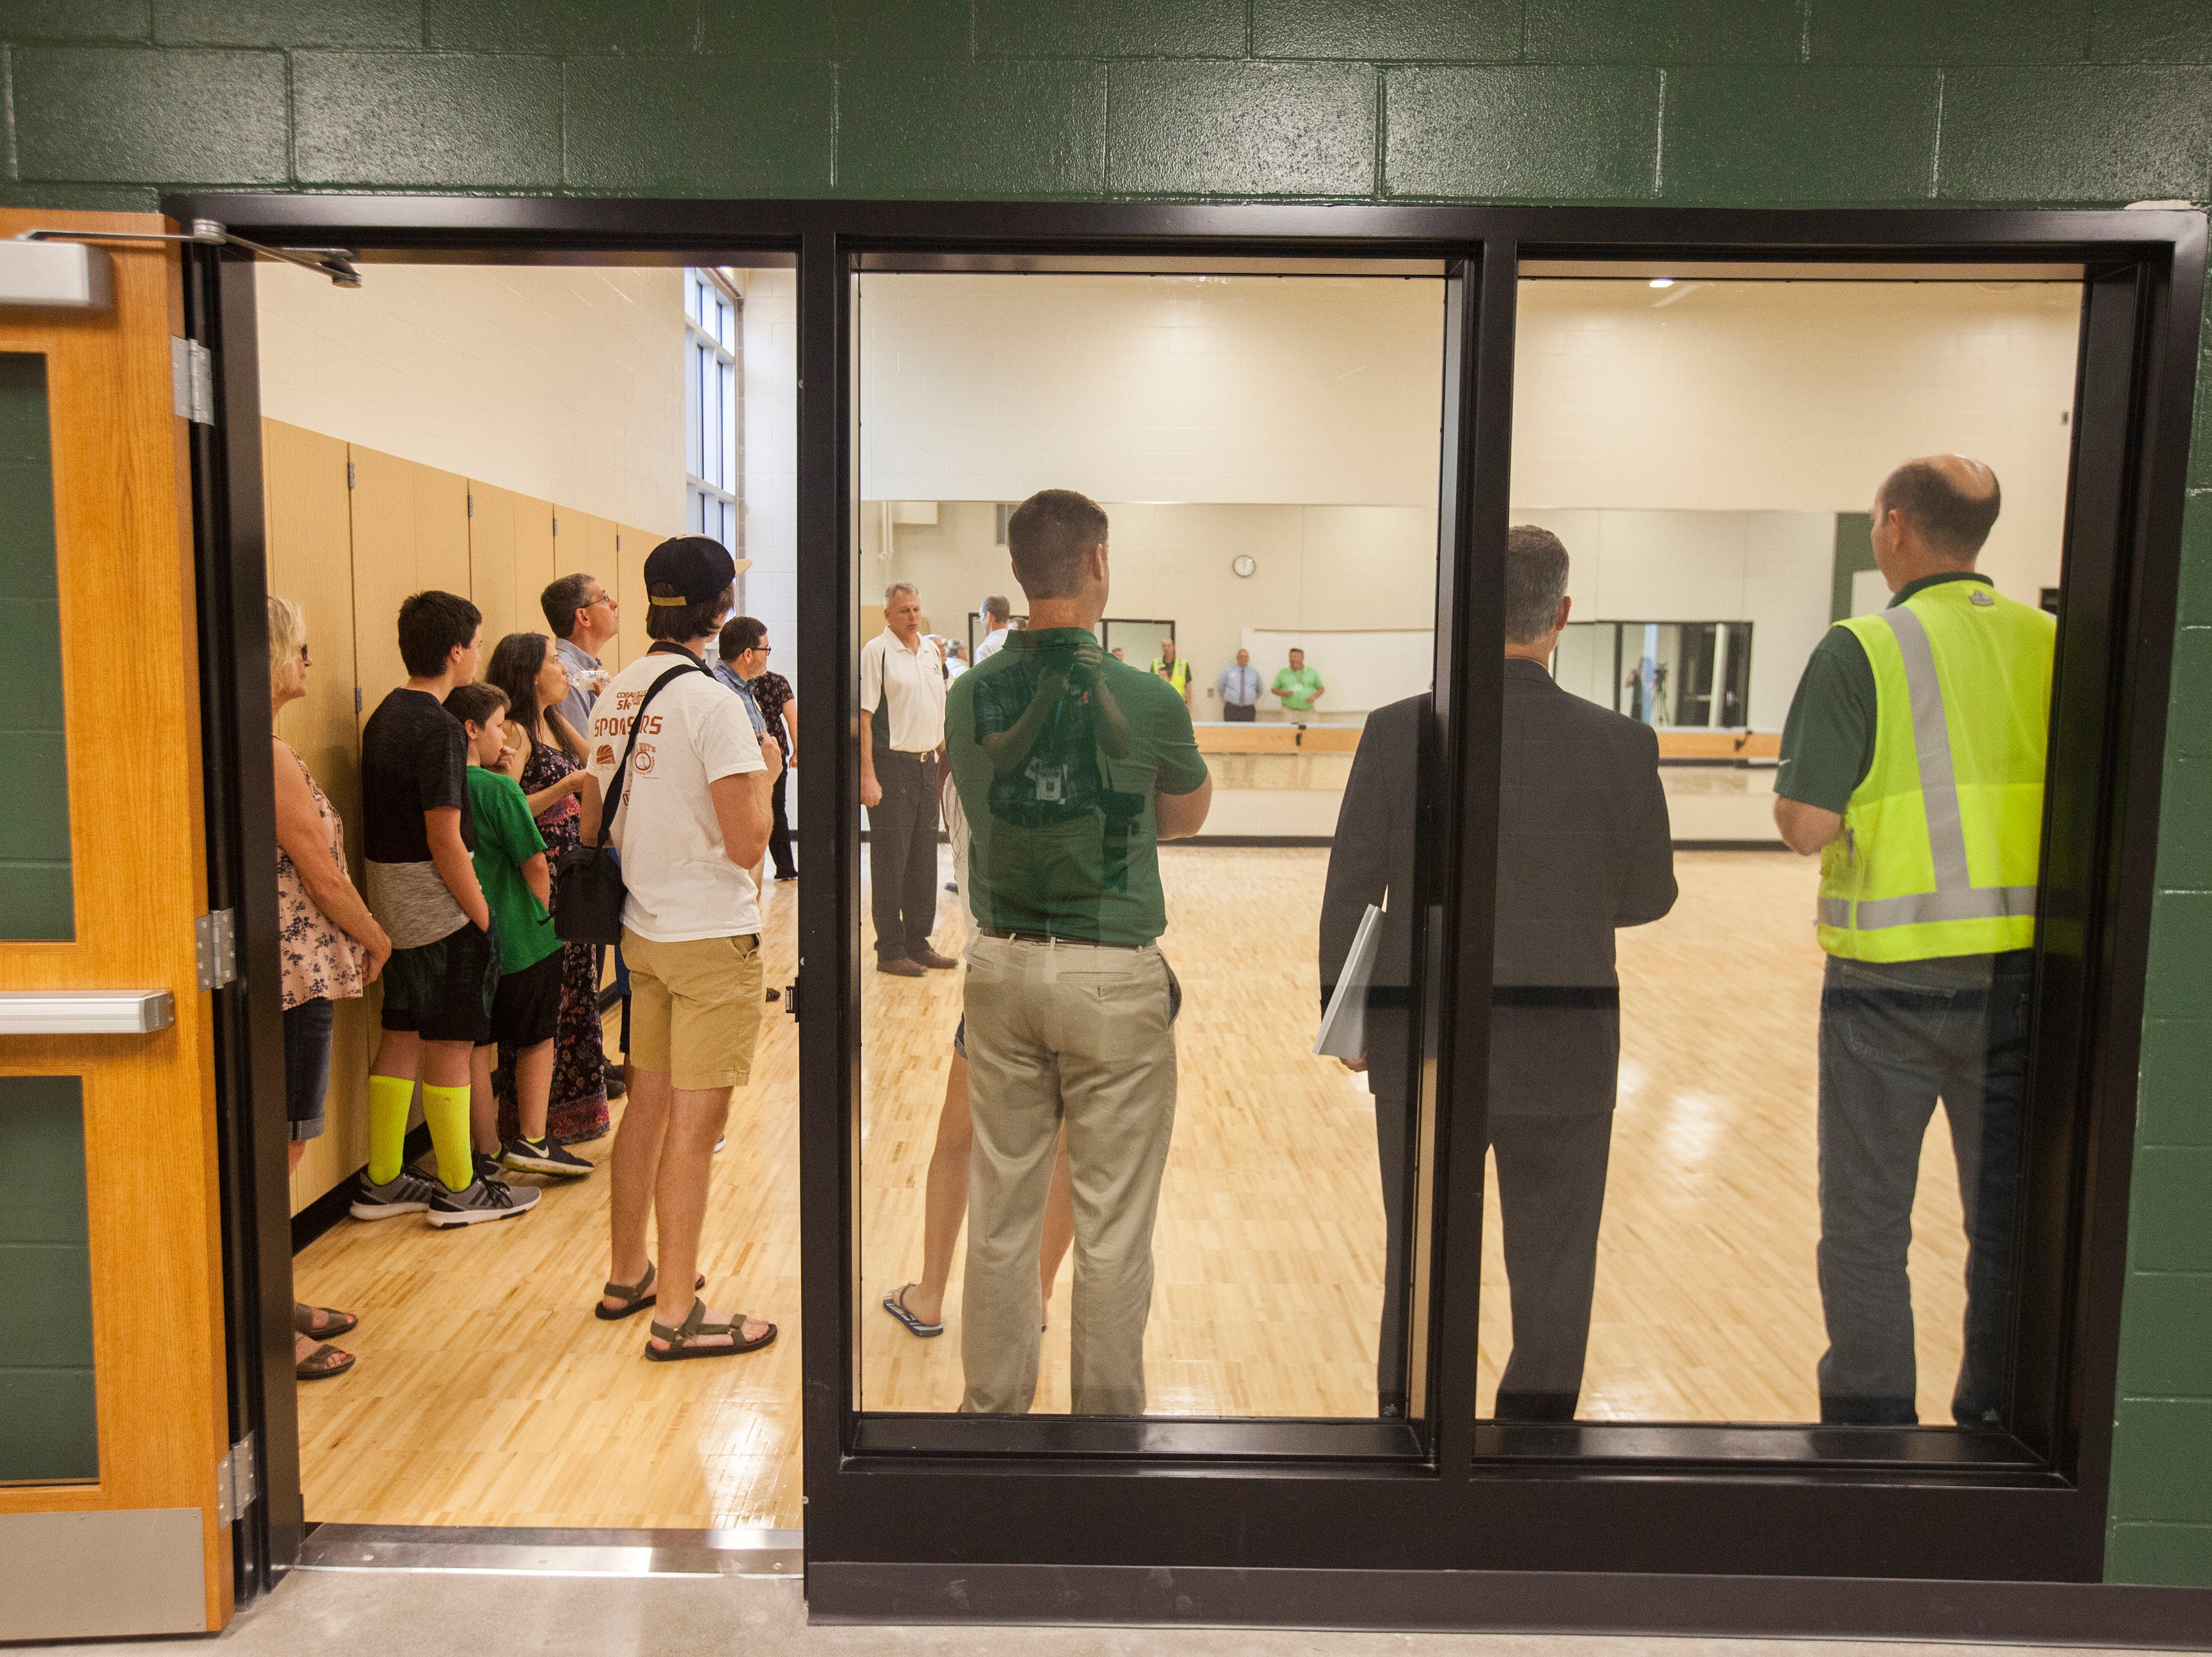 Community members stand in a room for the dance team during a tour of a recently completed addition to facilities on Wednesday, Aug. 15, 2018, at West High School in Iowa City. The addition was the first phase of renovations set to take place for the building that opened in 1968.